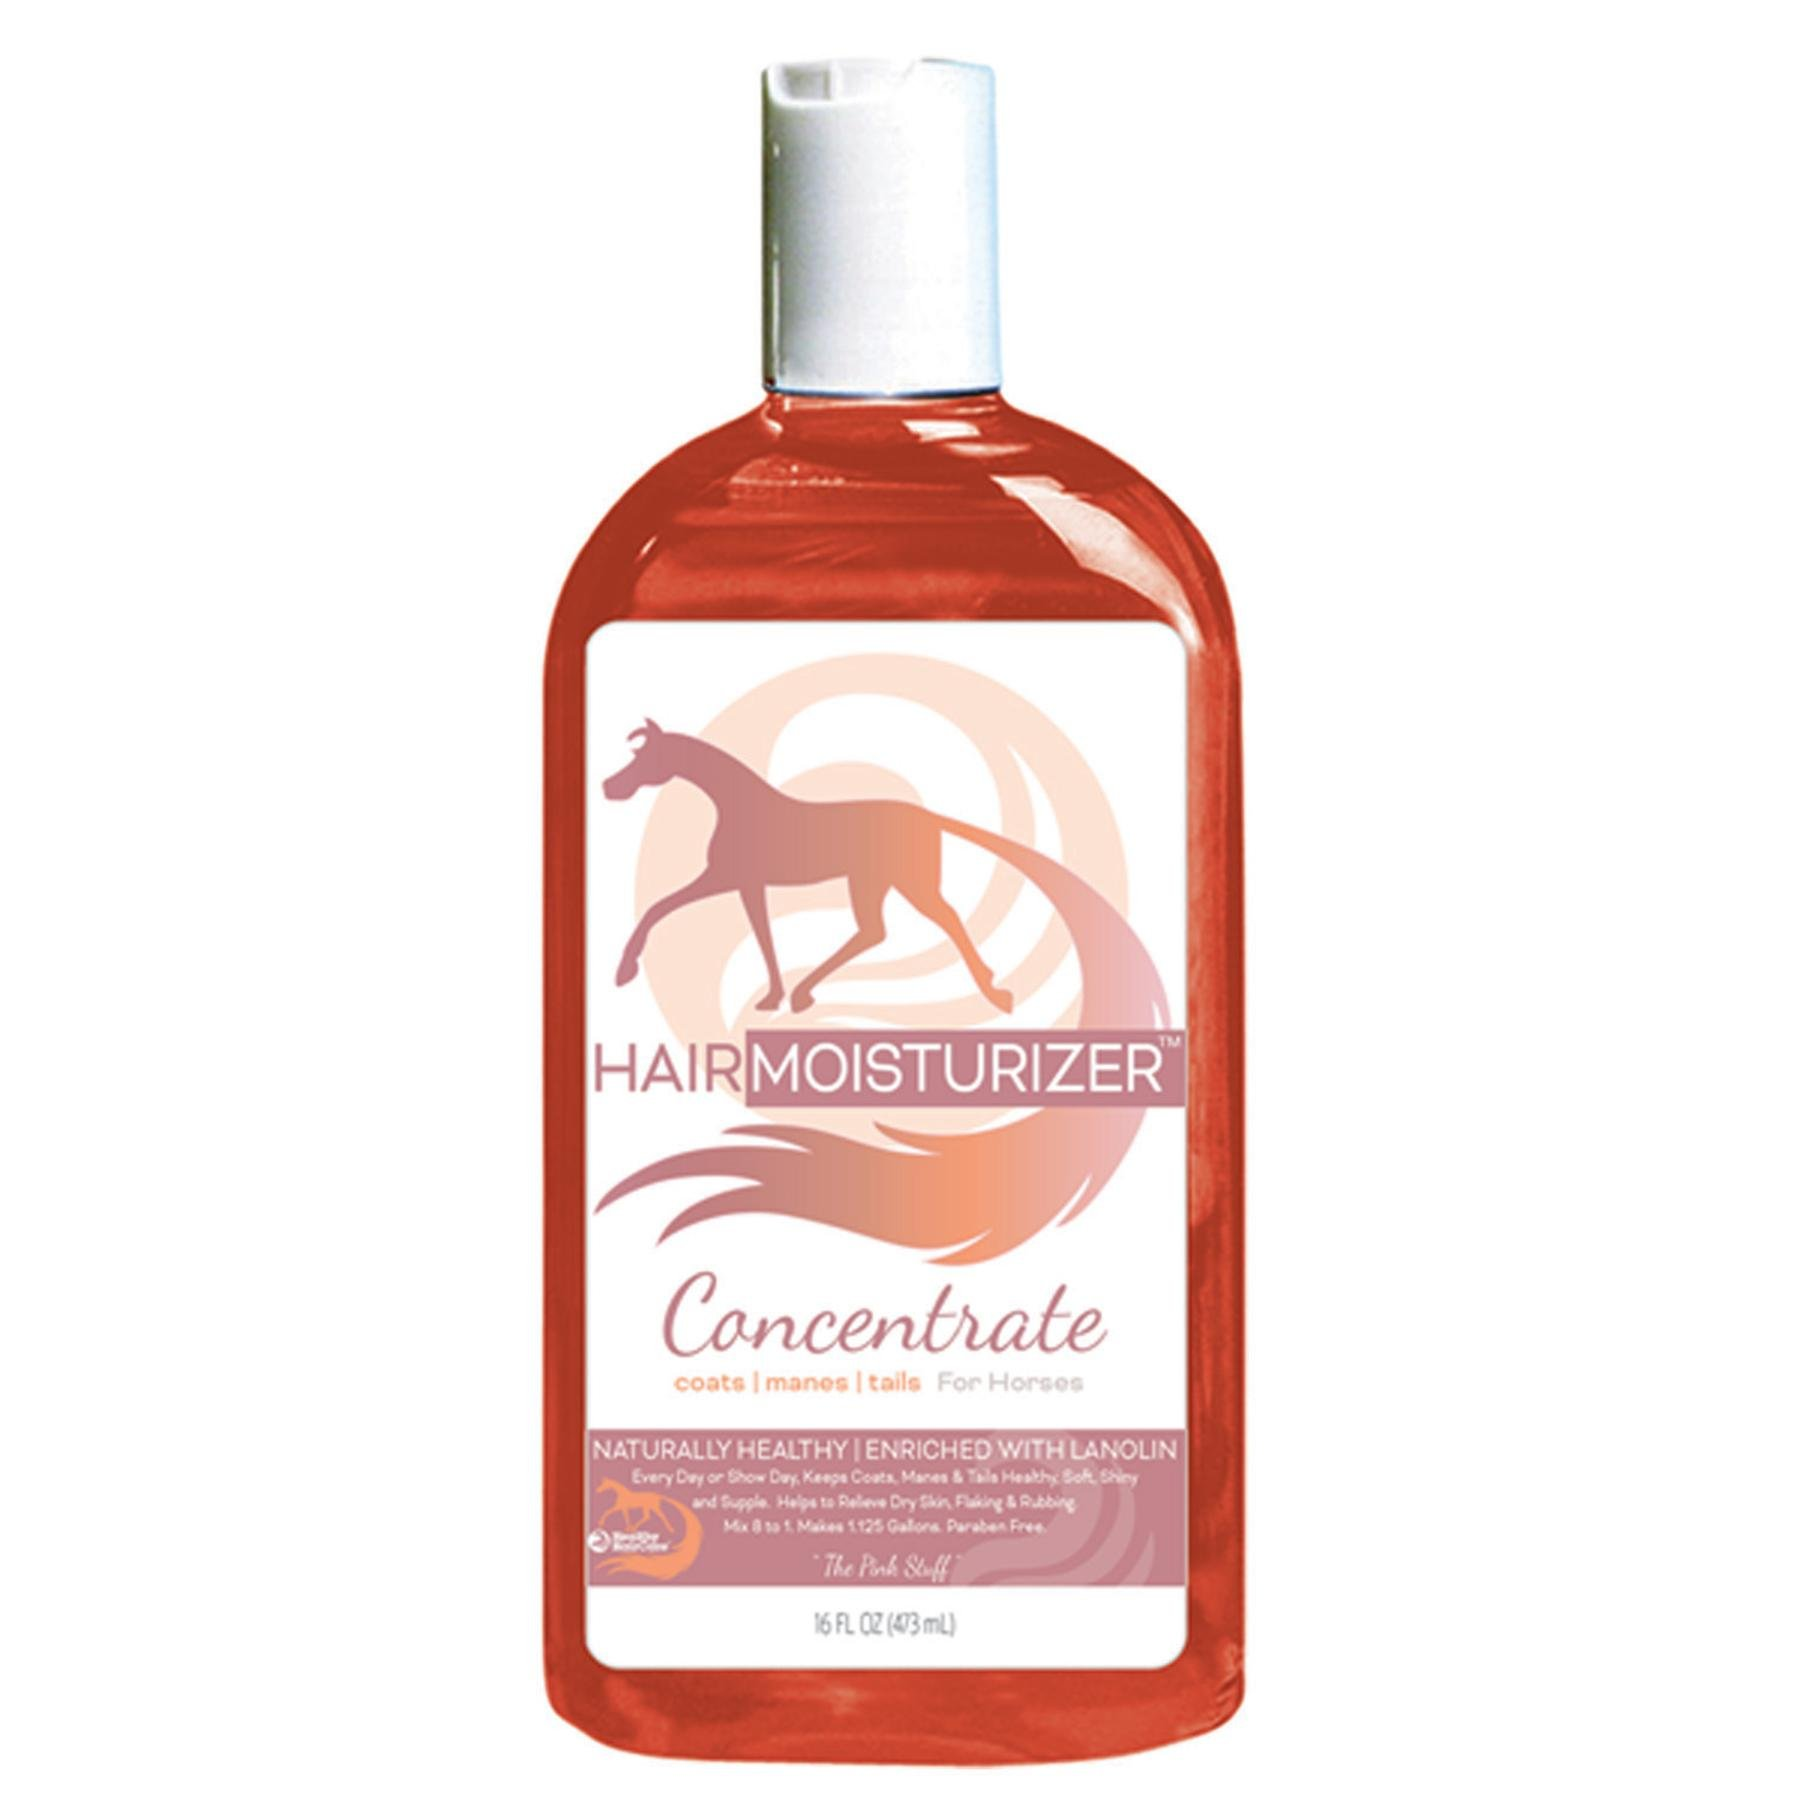 Healthy Hair Care Products 16 fl oz CONCENTRATE Hair Moisturizer for Horses Makes Up To One Gallon